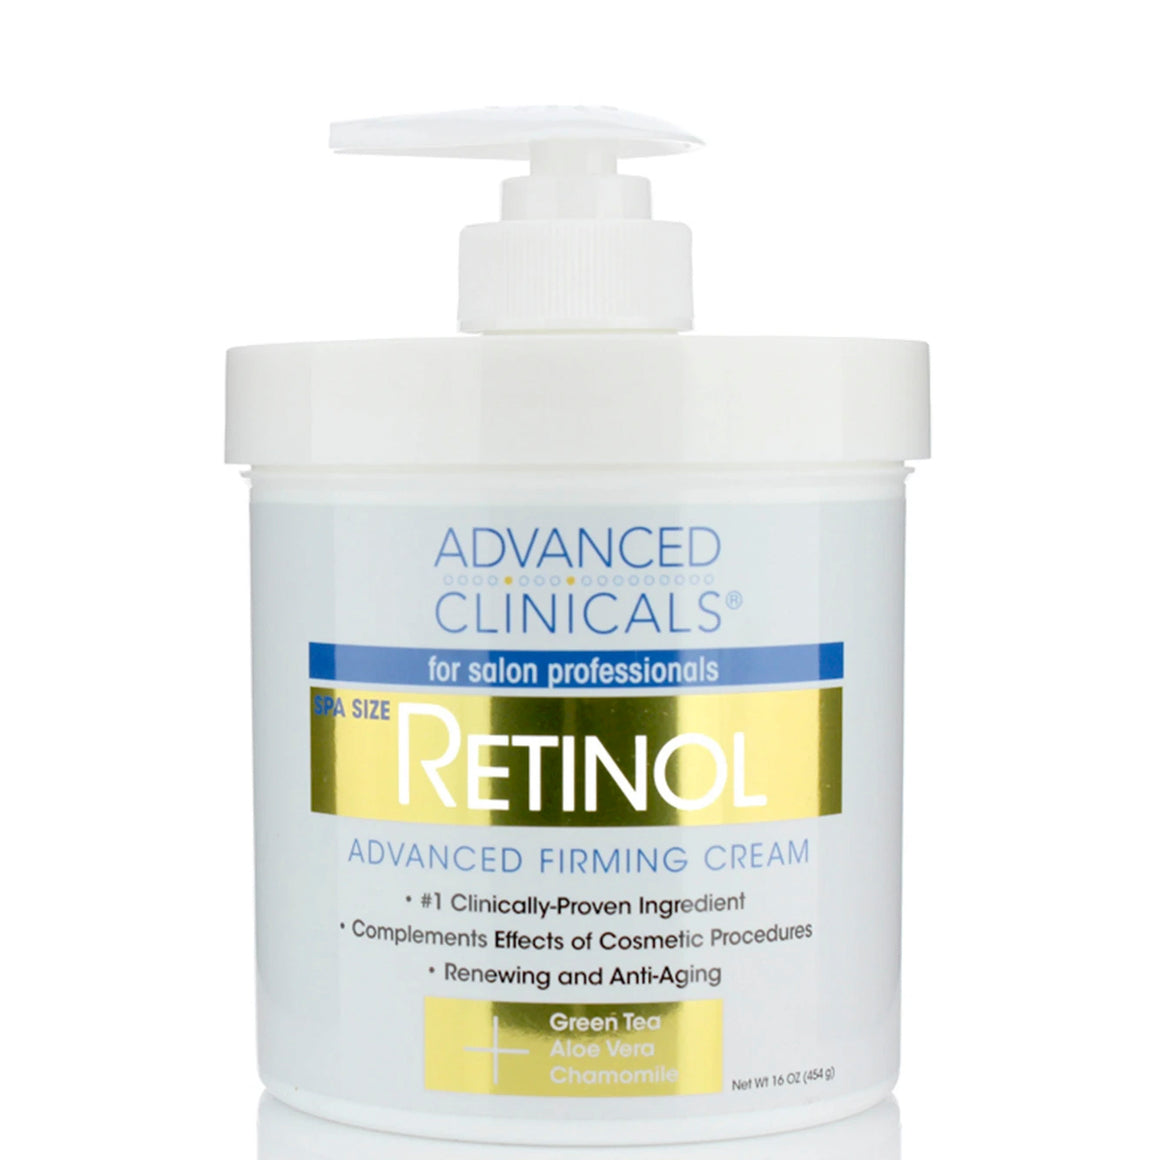 16oz retinol advanced firming cream with green tea, aloe vera, and chamomile